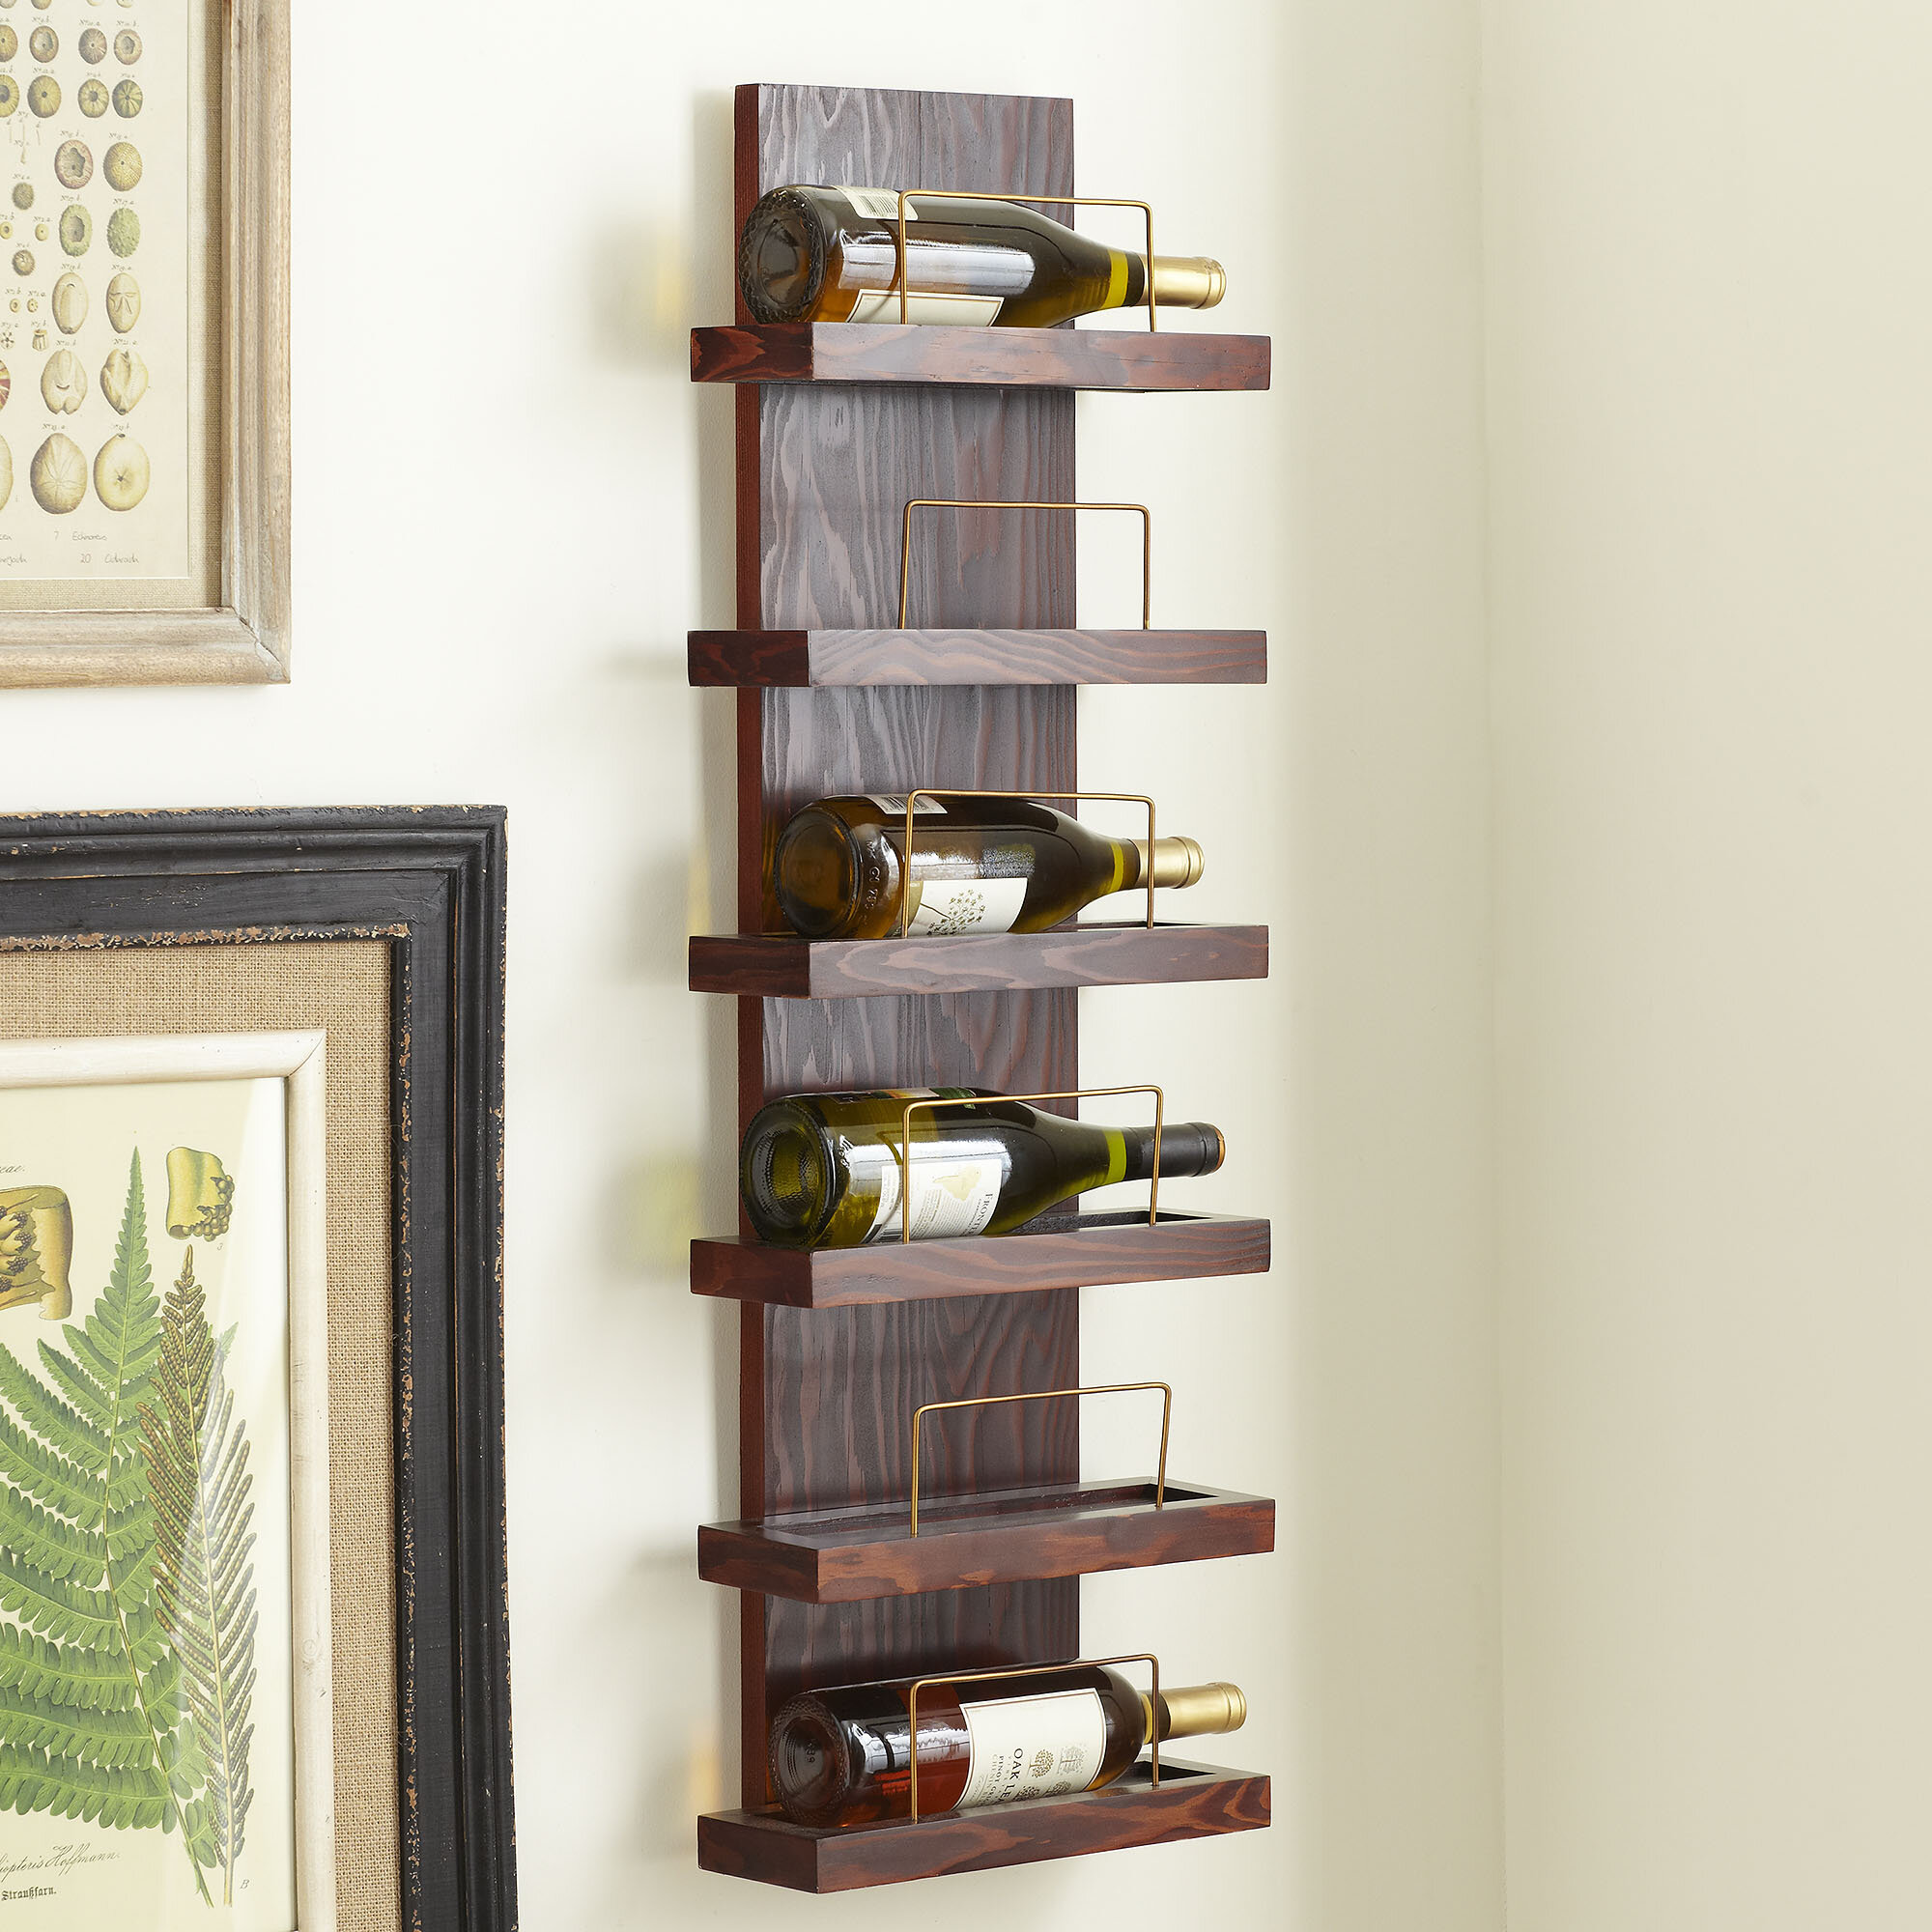 sonoma rack barn shelf holders the dining williams wall french bottle for wineglass ideas r glass wine modular shelves mount racks your pottery to mounted stylish organization